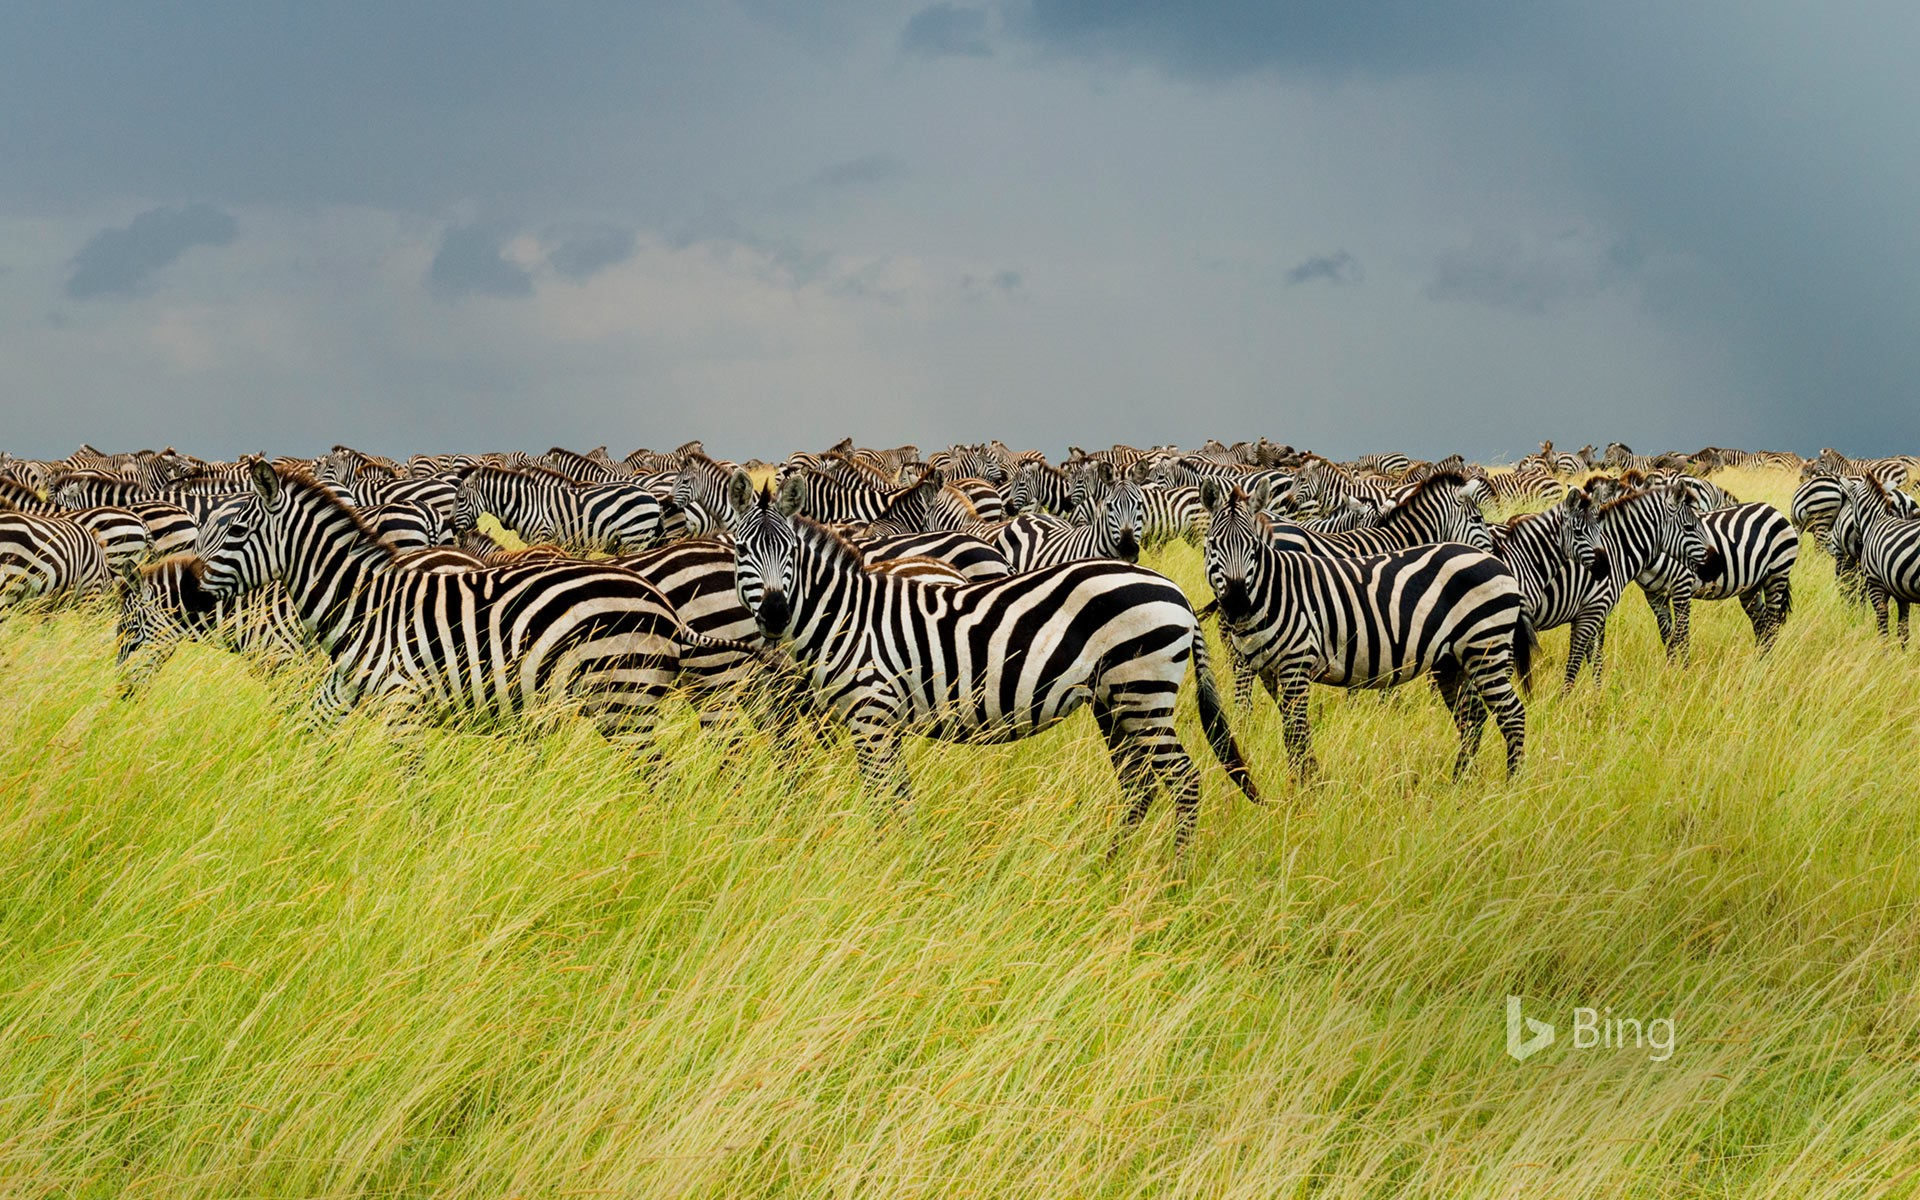 Zebras in Serengeti National Park, Tanzania